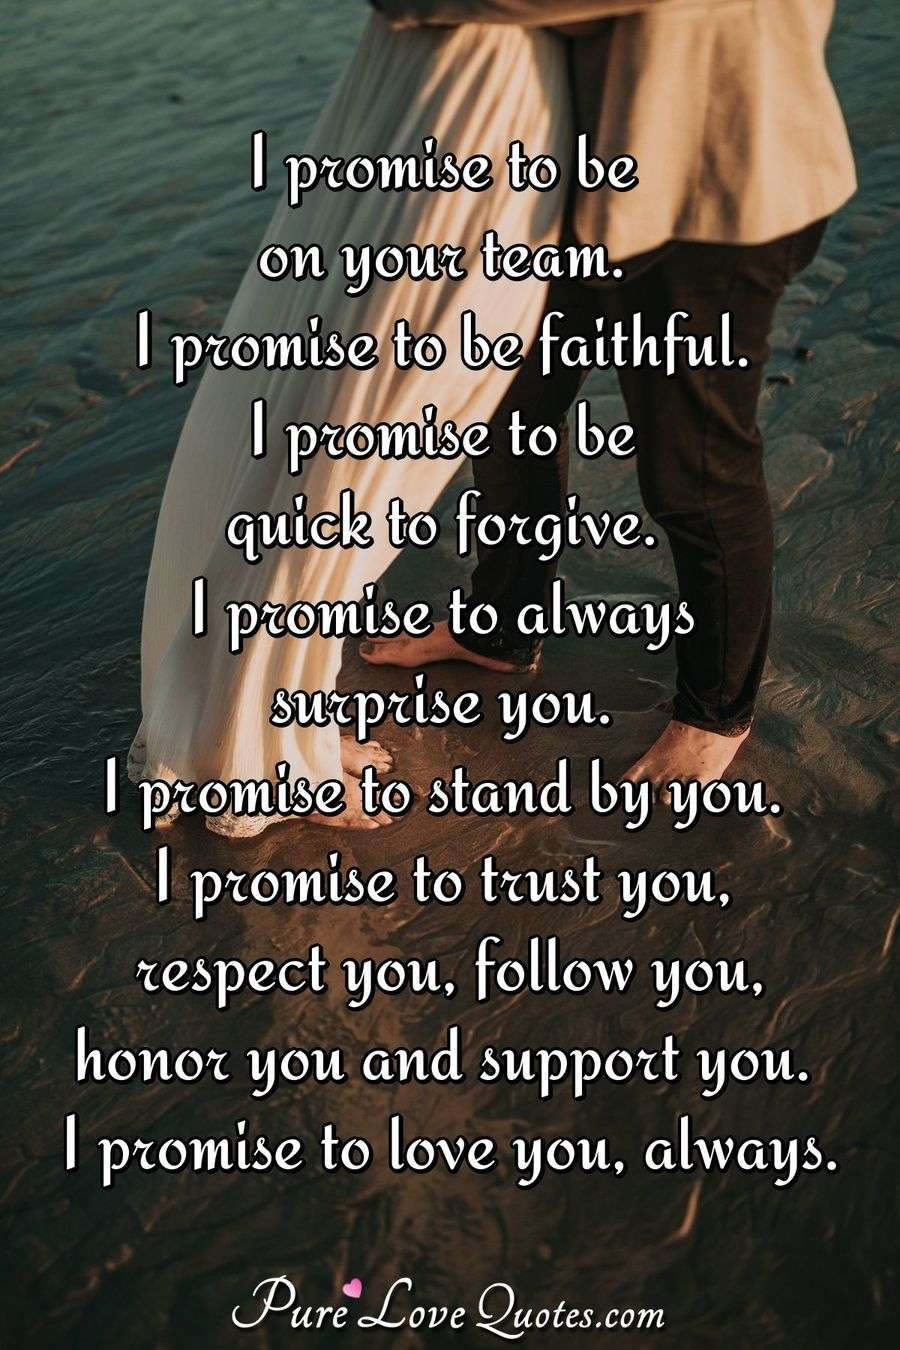 I promise to be on your team. I promise to be faithful. I ...